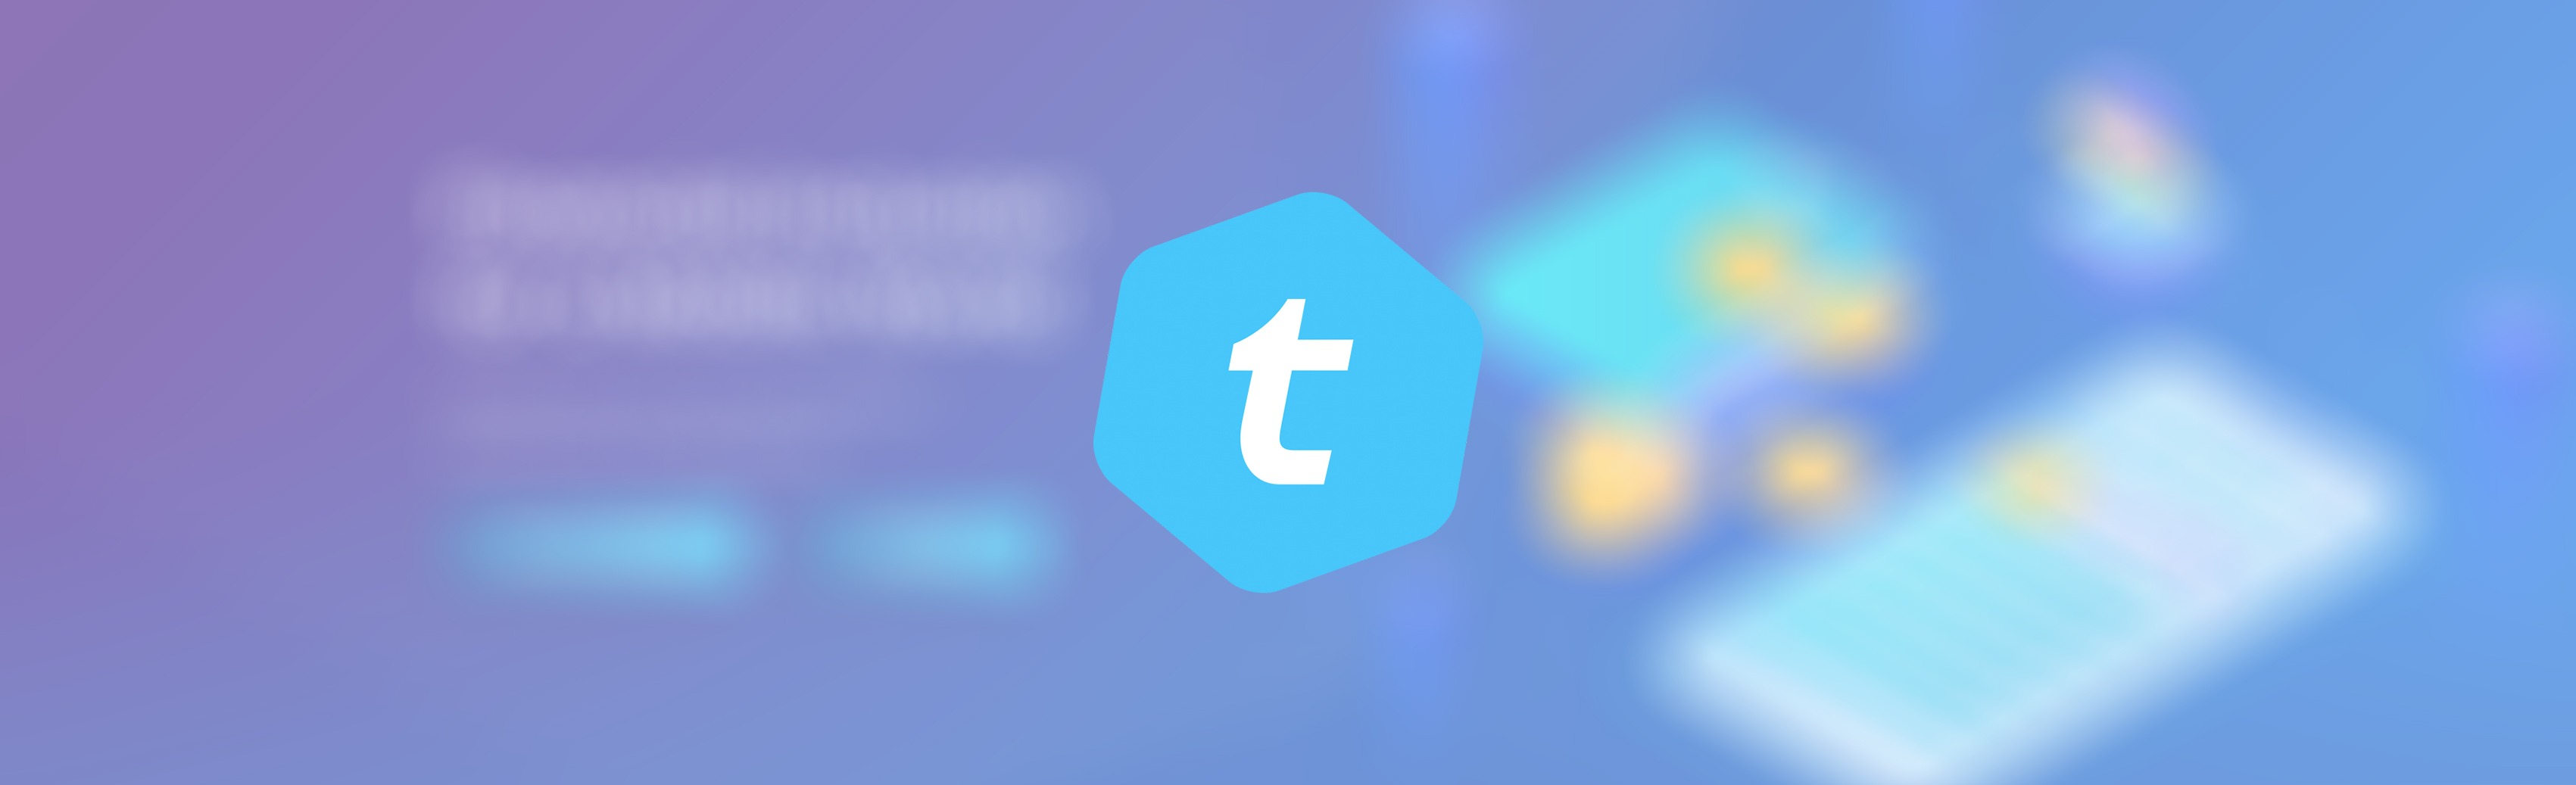 Telcoin website 2019